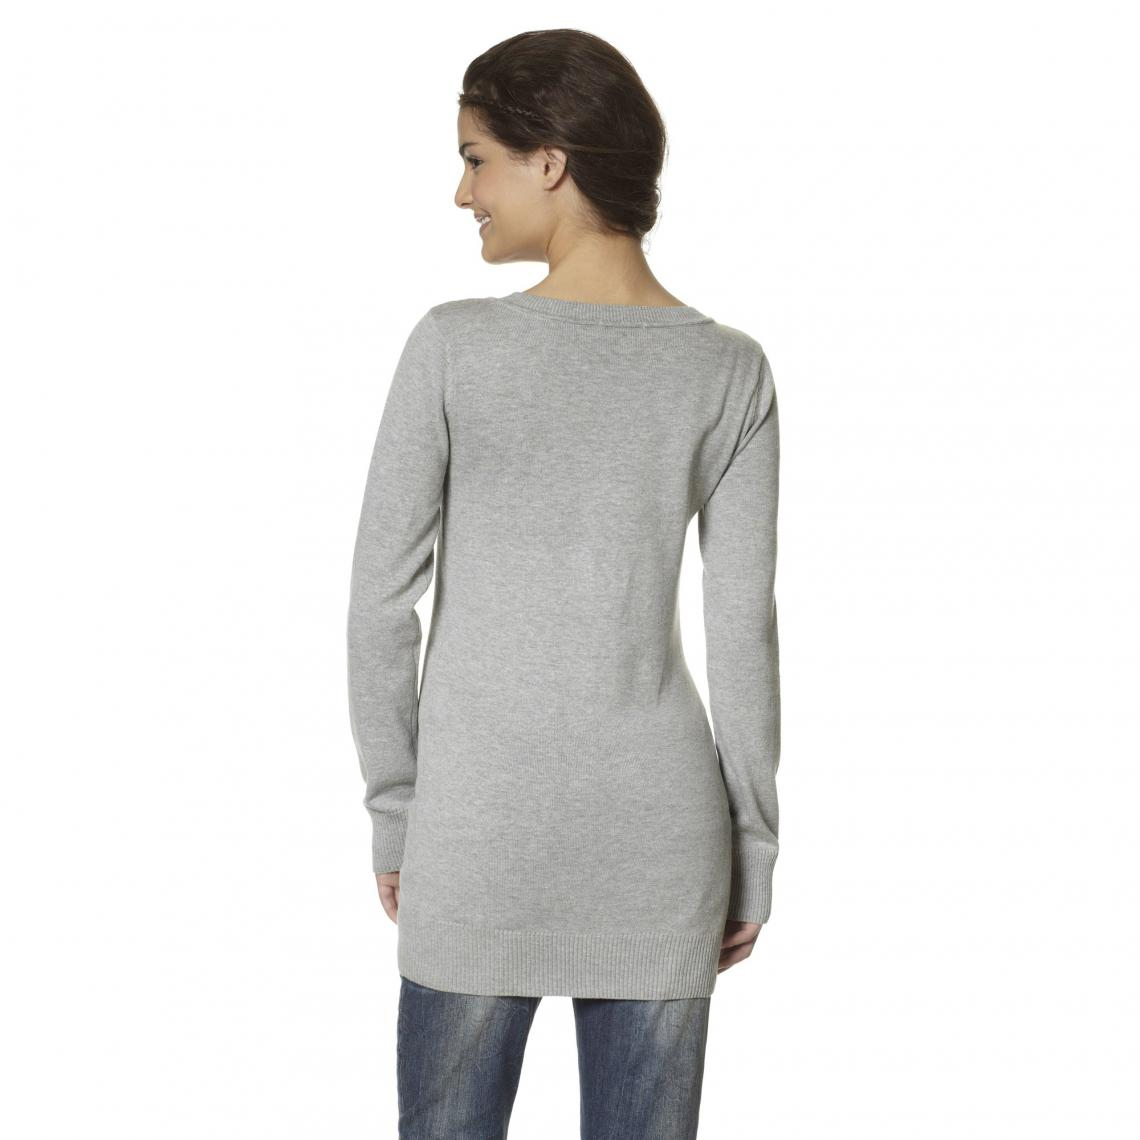 9c529143306b Pull manches longues col rond femme Flashlights - Gris